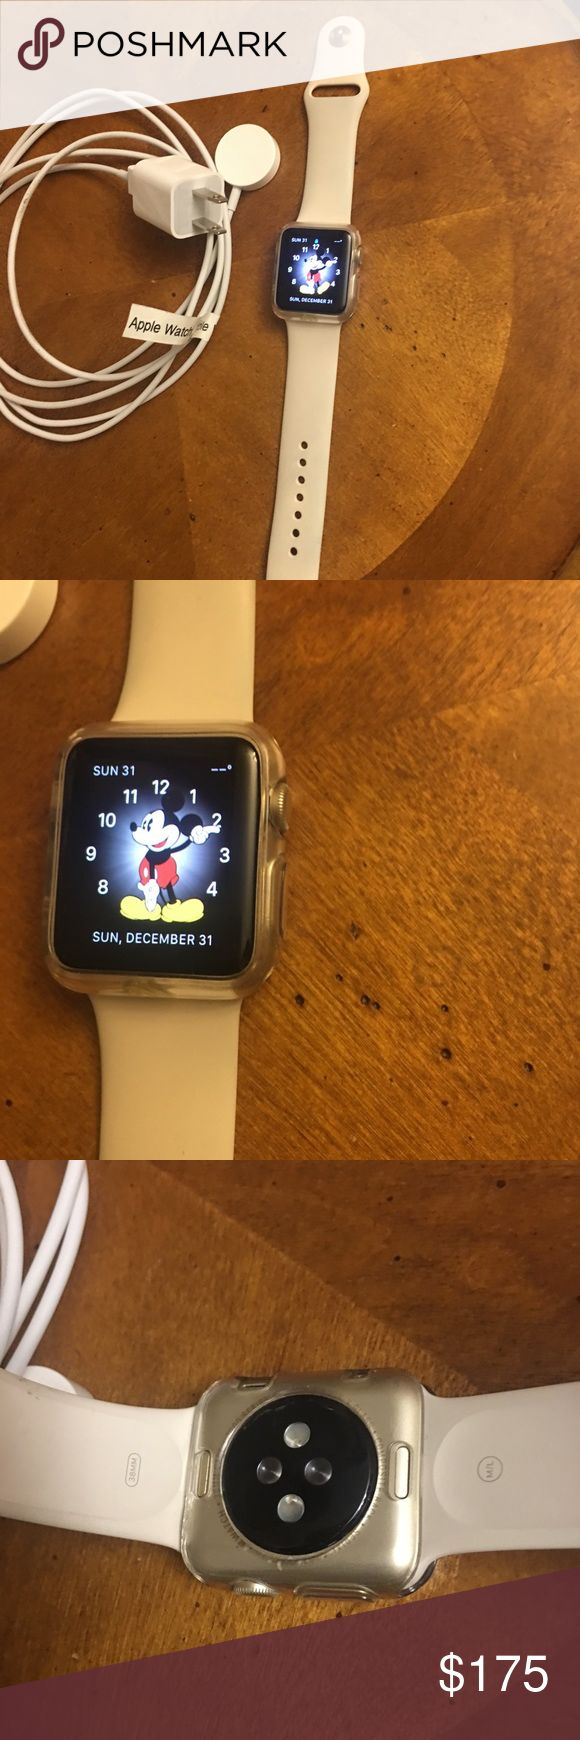 Apple Watch series 1 38mm Gold PRICE FIRM Has some light rubbing on the undercarriage do to wear. Other than that it's good condition. No box or manuals, just the watch, charger, and the clear Casemate cover on it. Will come fully charged and ready to pair with your iPhone. apple Accessories Watches